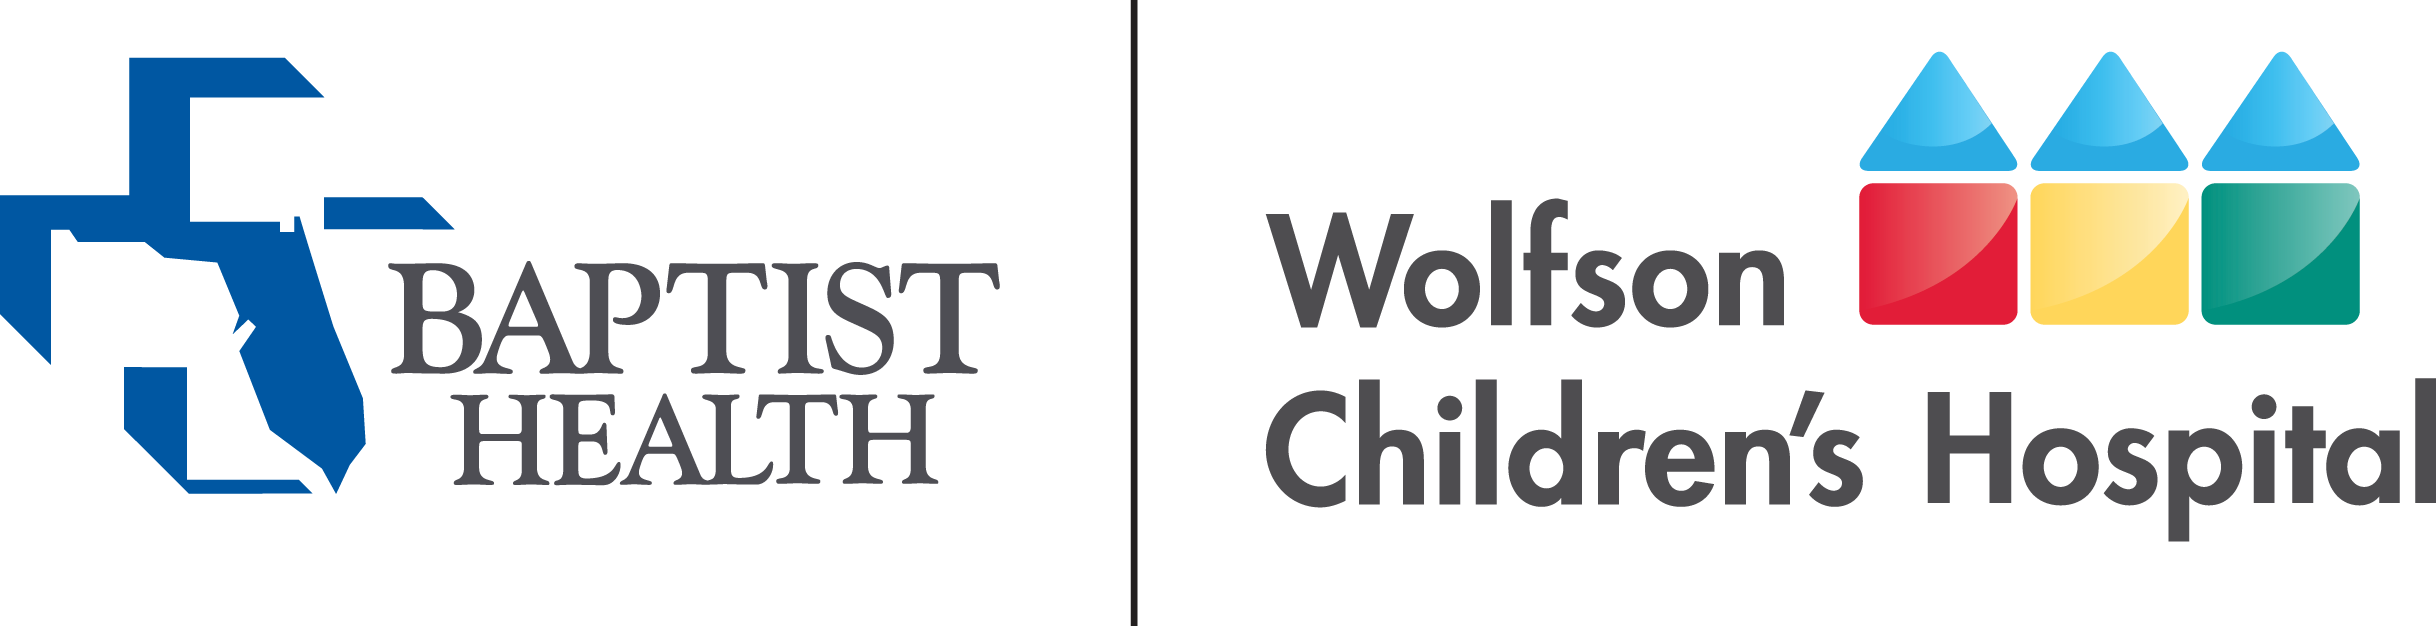 Baptist Health logo next to the Wolfson Children's Hospital logo